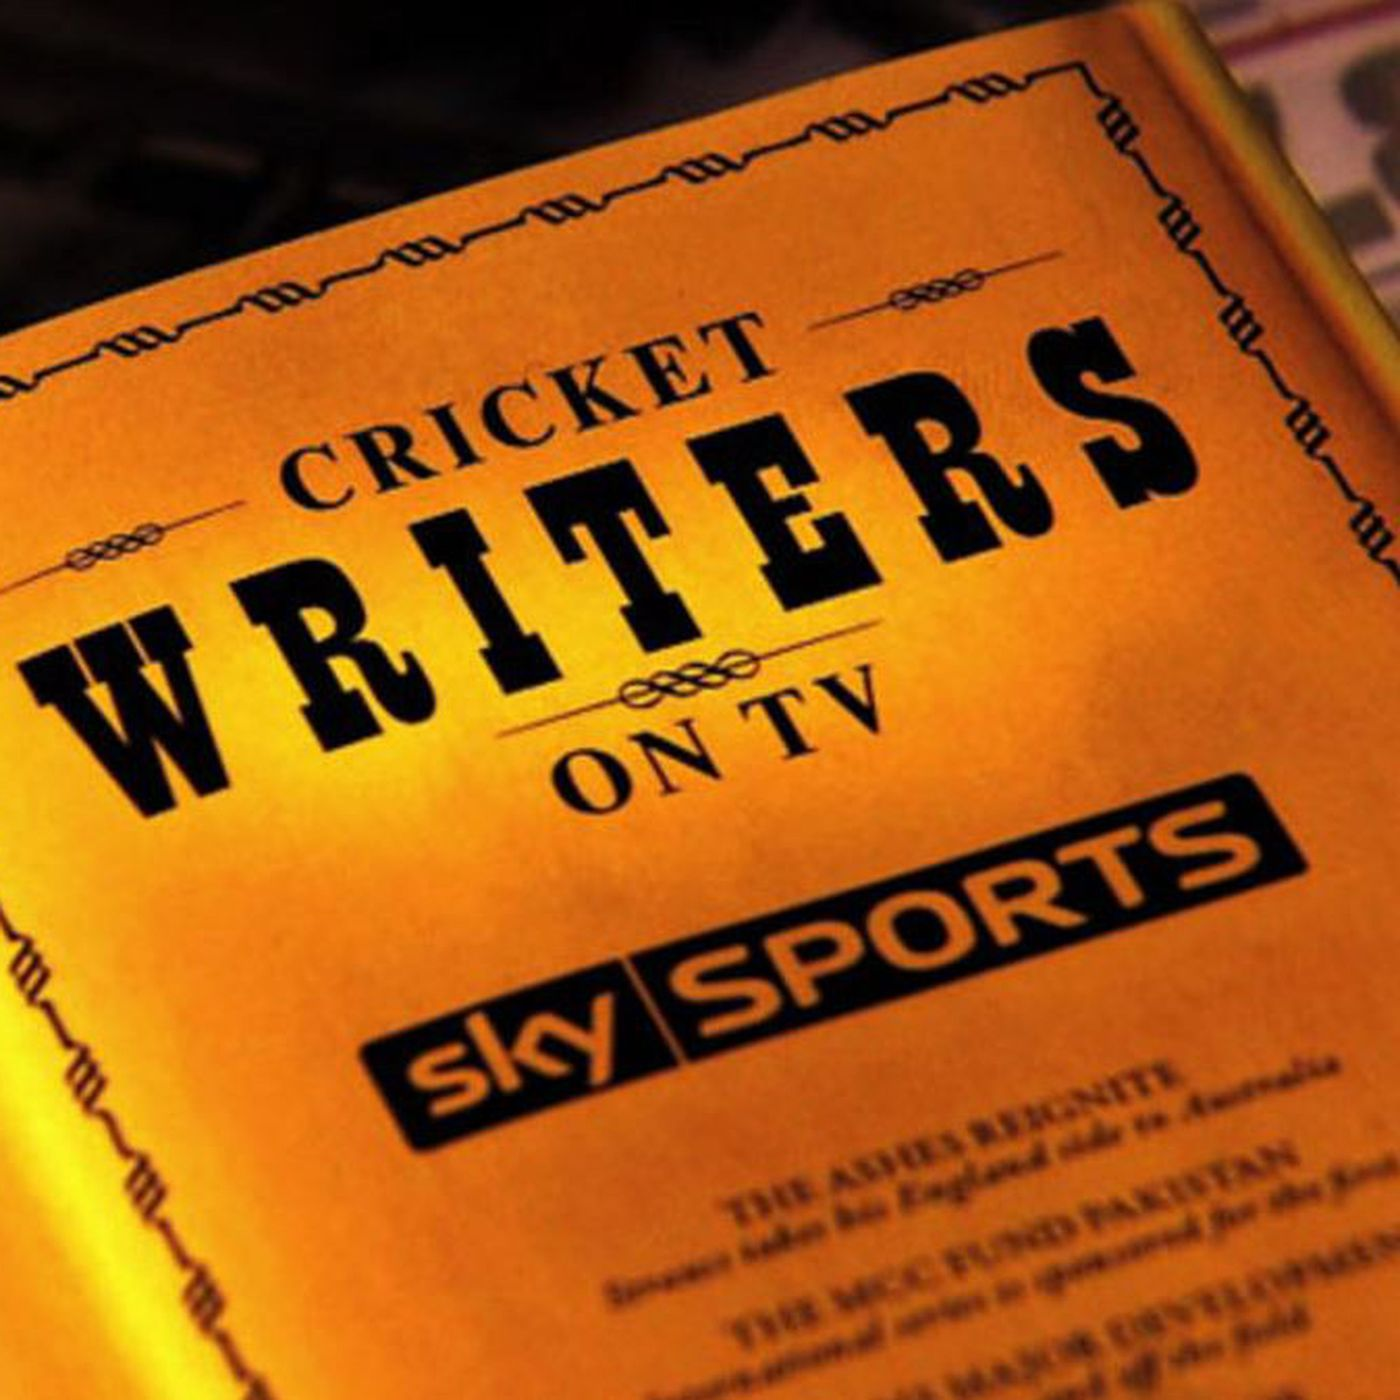 Cricket Writers on TV - July 16th